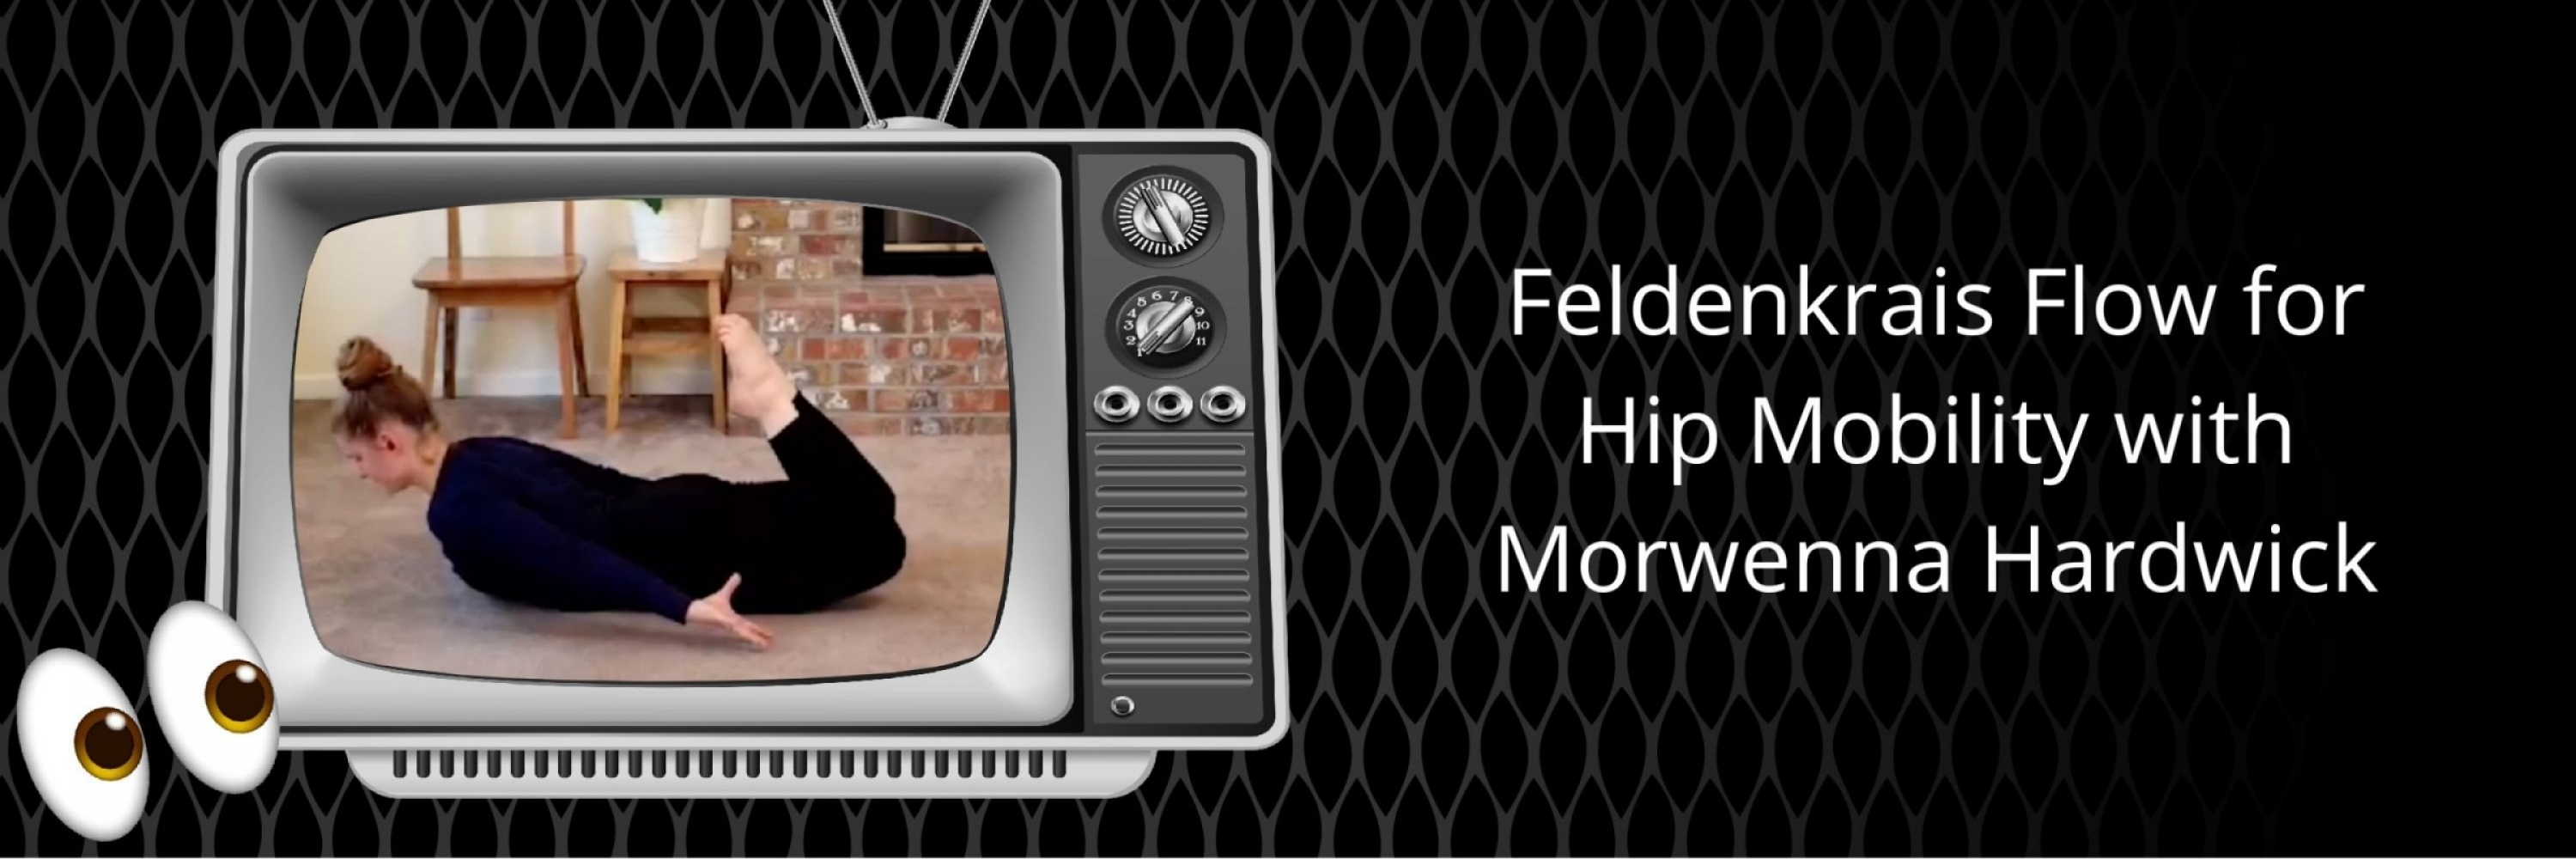 Feldenkrais Flow for Hip Mobility and Full Body Strength